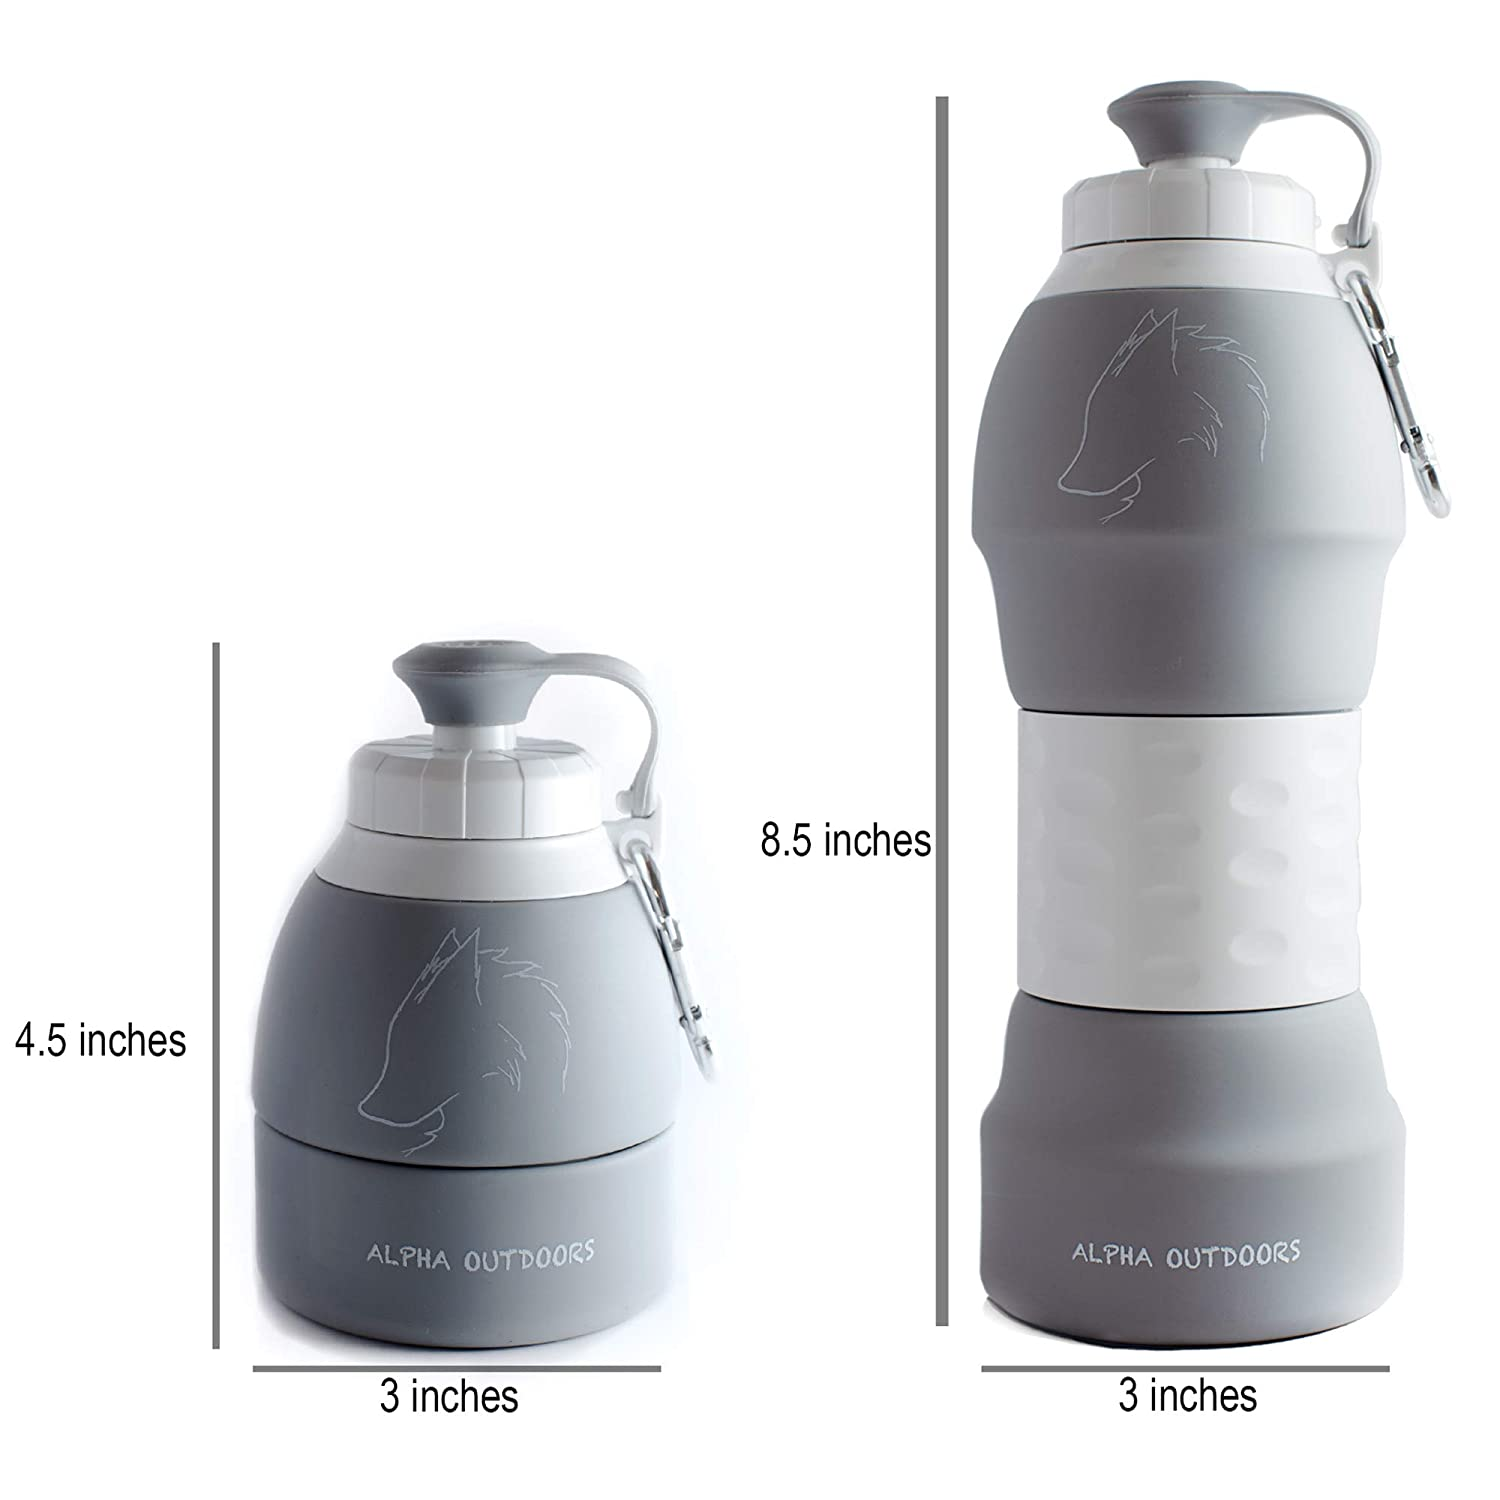 Hiking Leak /& Shatter Proof Design-BPA Free-FDA Approved-EcoFriendly-Foldable Sport Bottle for Traveling Camping and Sports AlphaOutdoors Collapsible Water Bottle